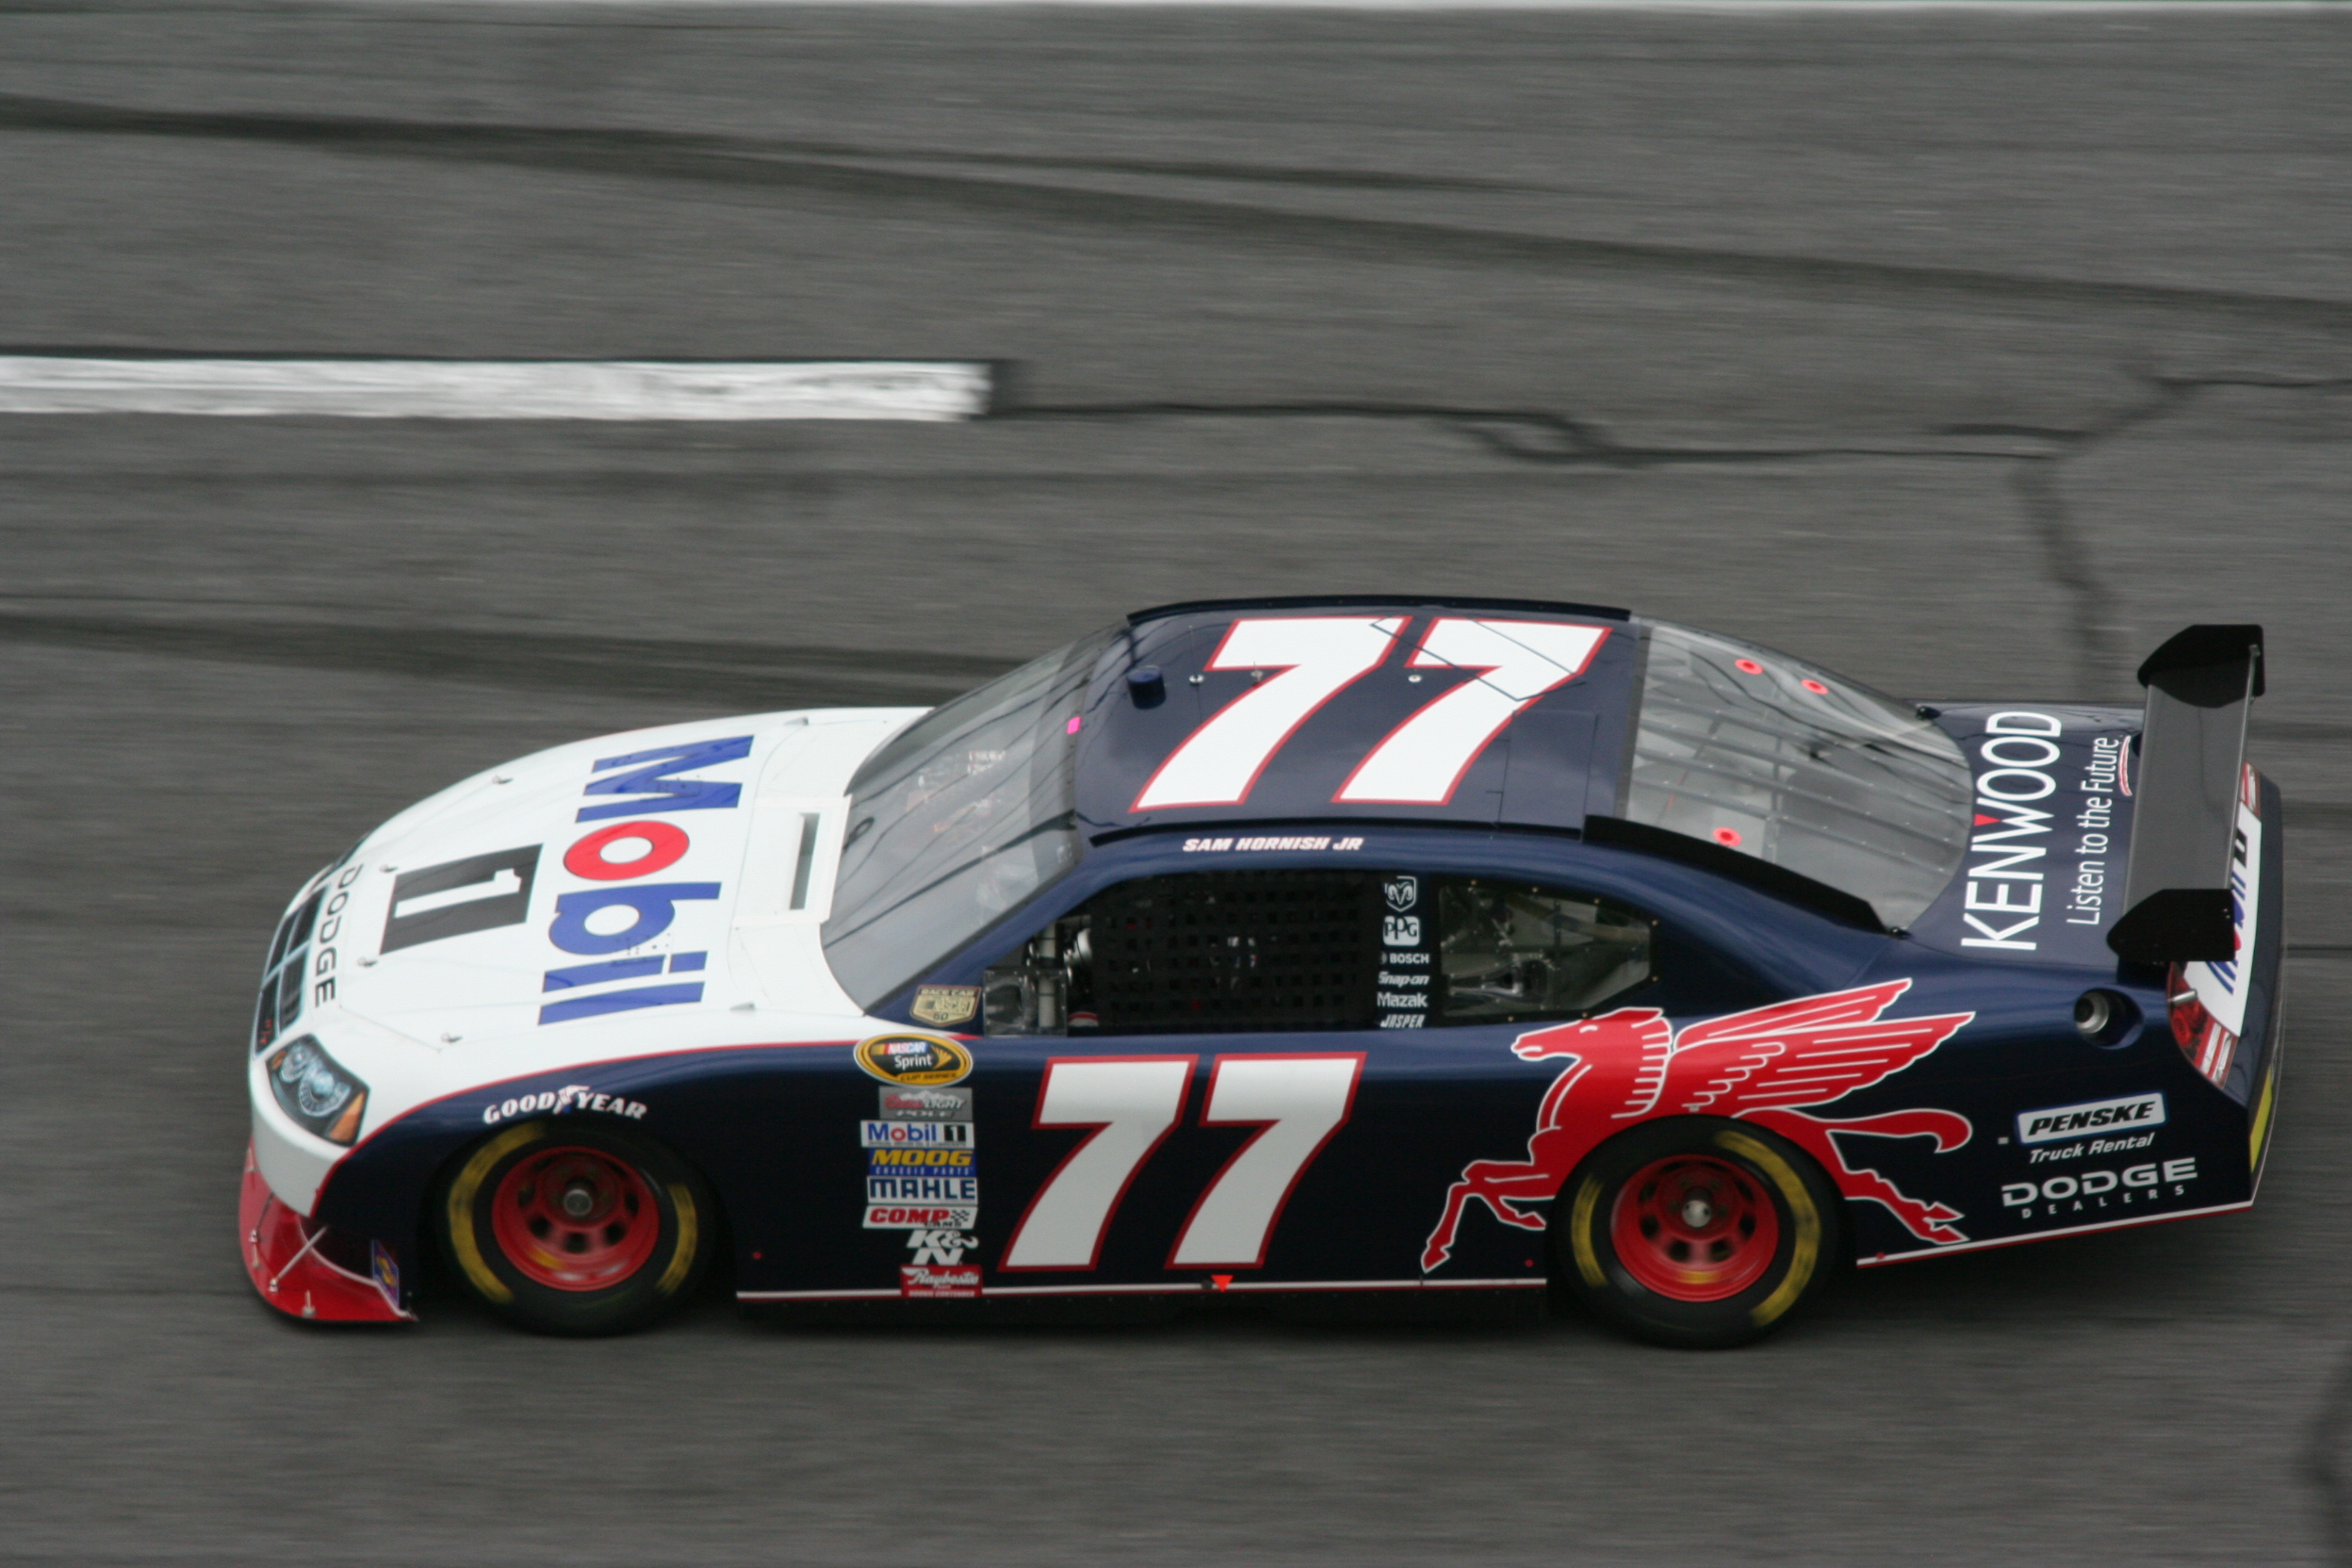 File:Sam Hornish, Jr. 2008 Mobil 1 Dodge Charger.jpg